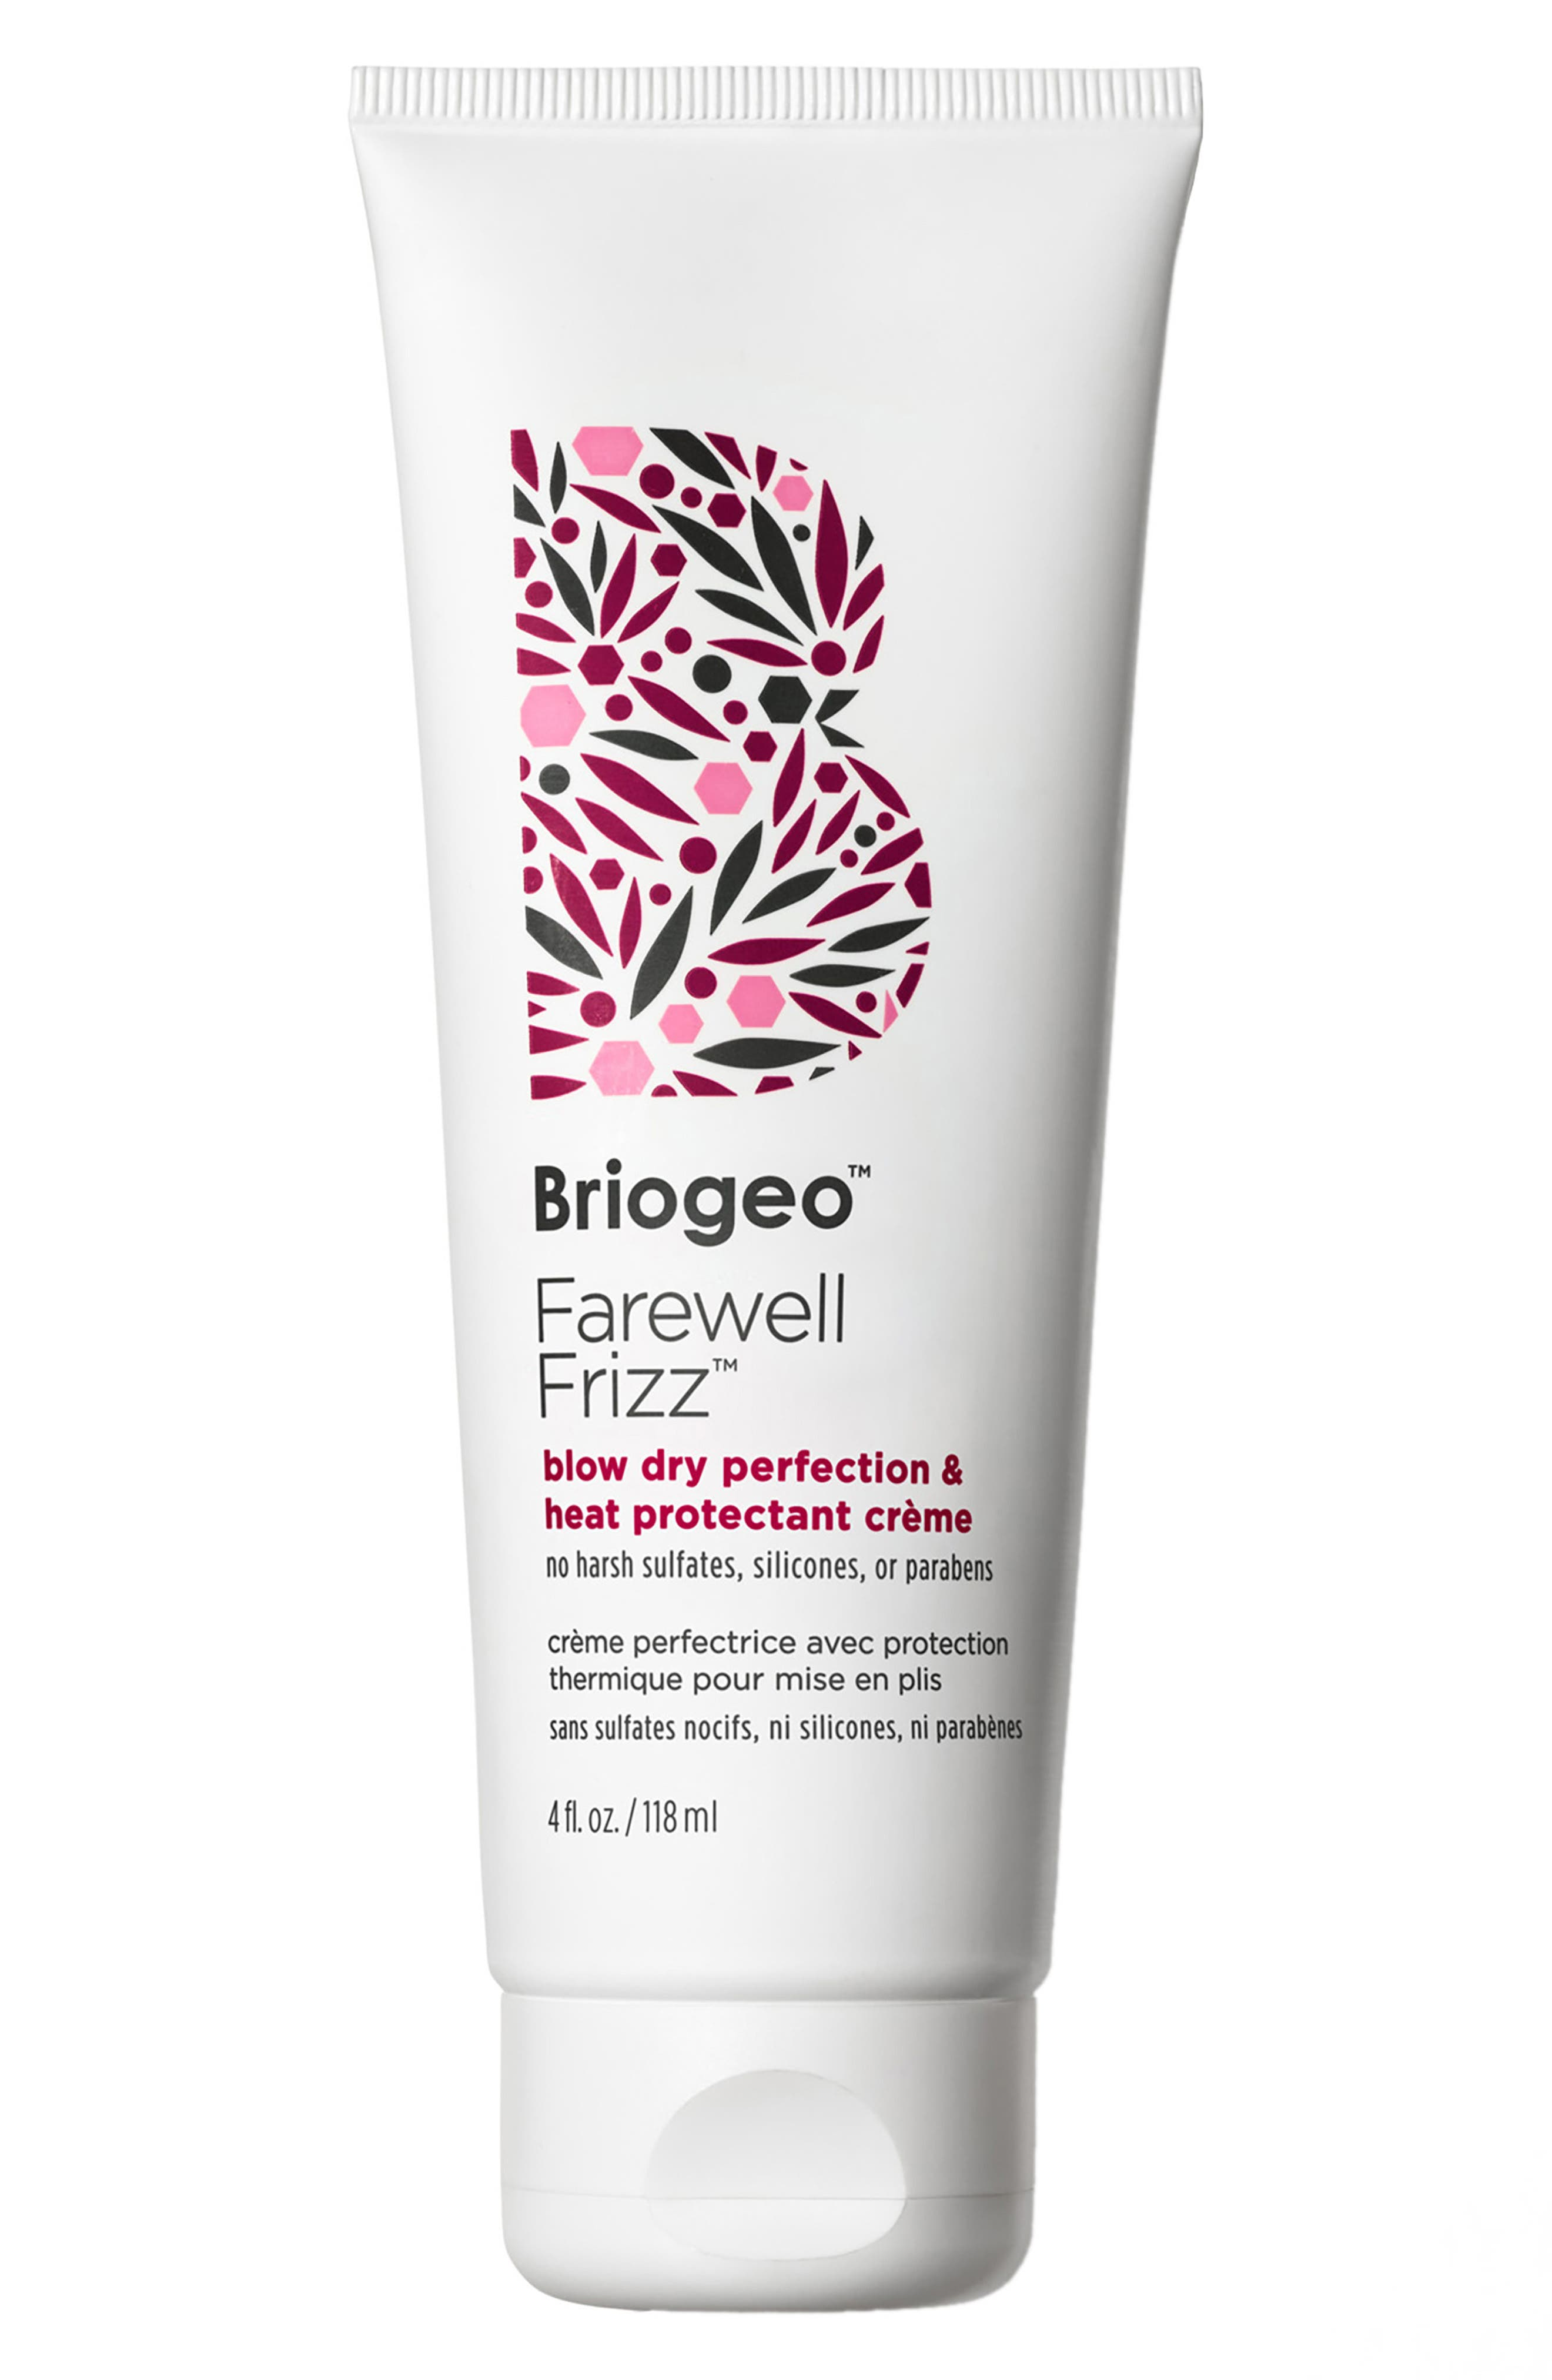 Farewell Frizz Blow Dry Perfection And Heat Protectant Creme